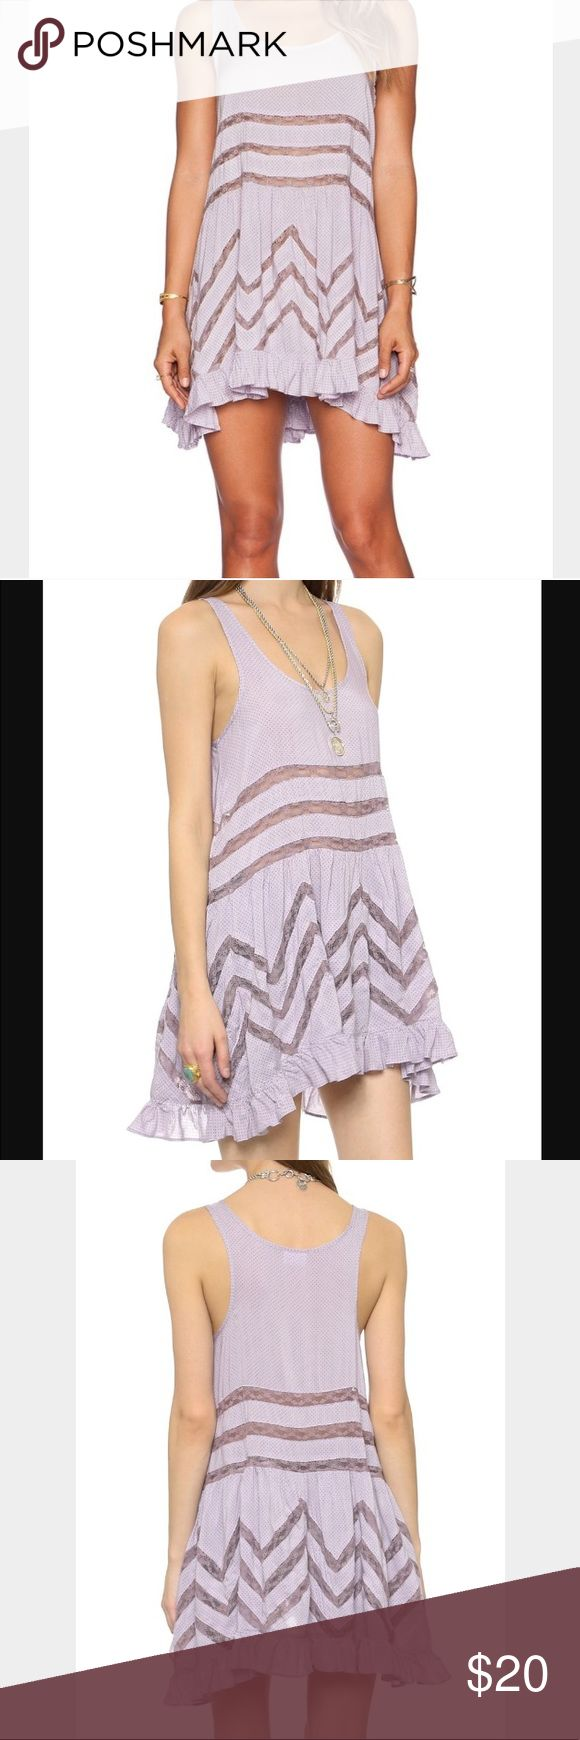 Free People Trapeze Voile Dress XS Free People Intimately Trapeze Voile Lace Slip XS. Light Purple/Violet Color 💜 30% off 2 or more items Free People Intimates & Sleepwear Chemises & Slips